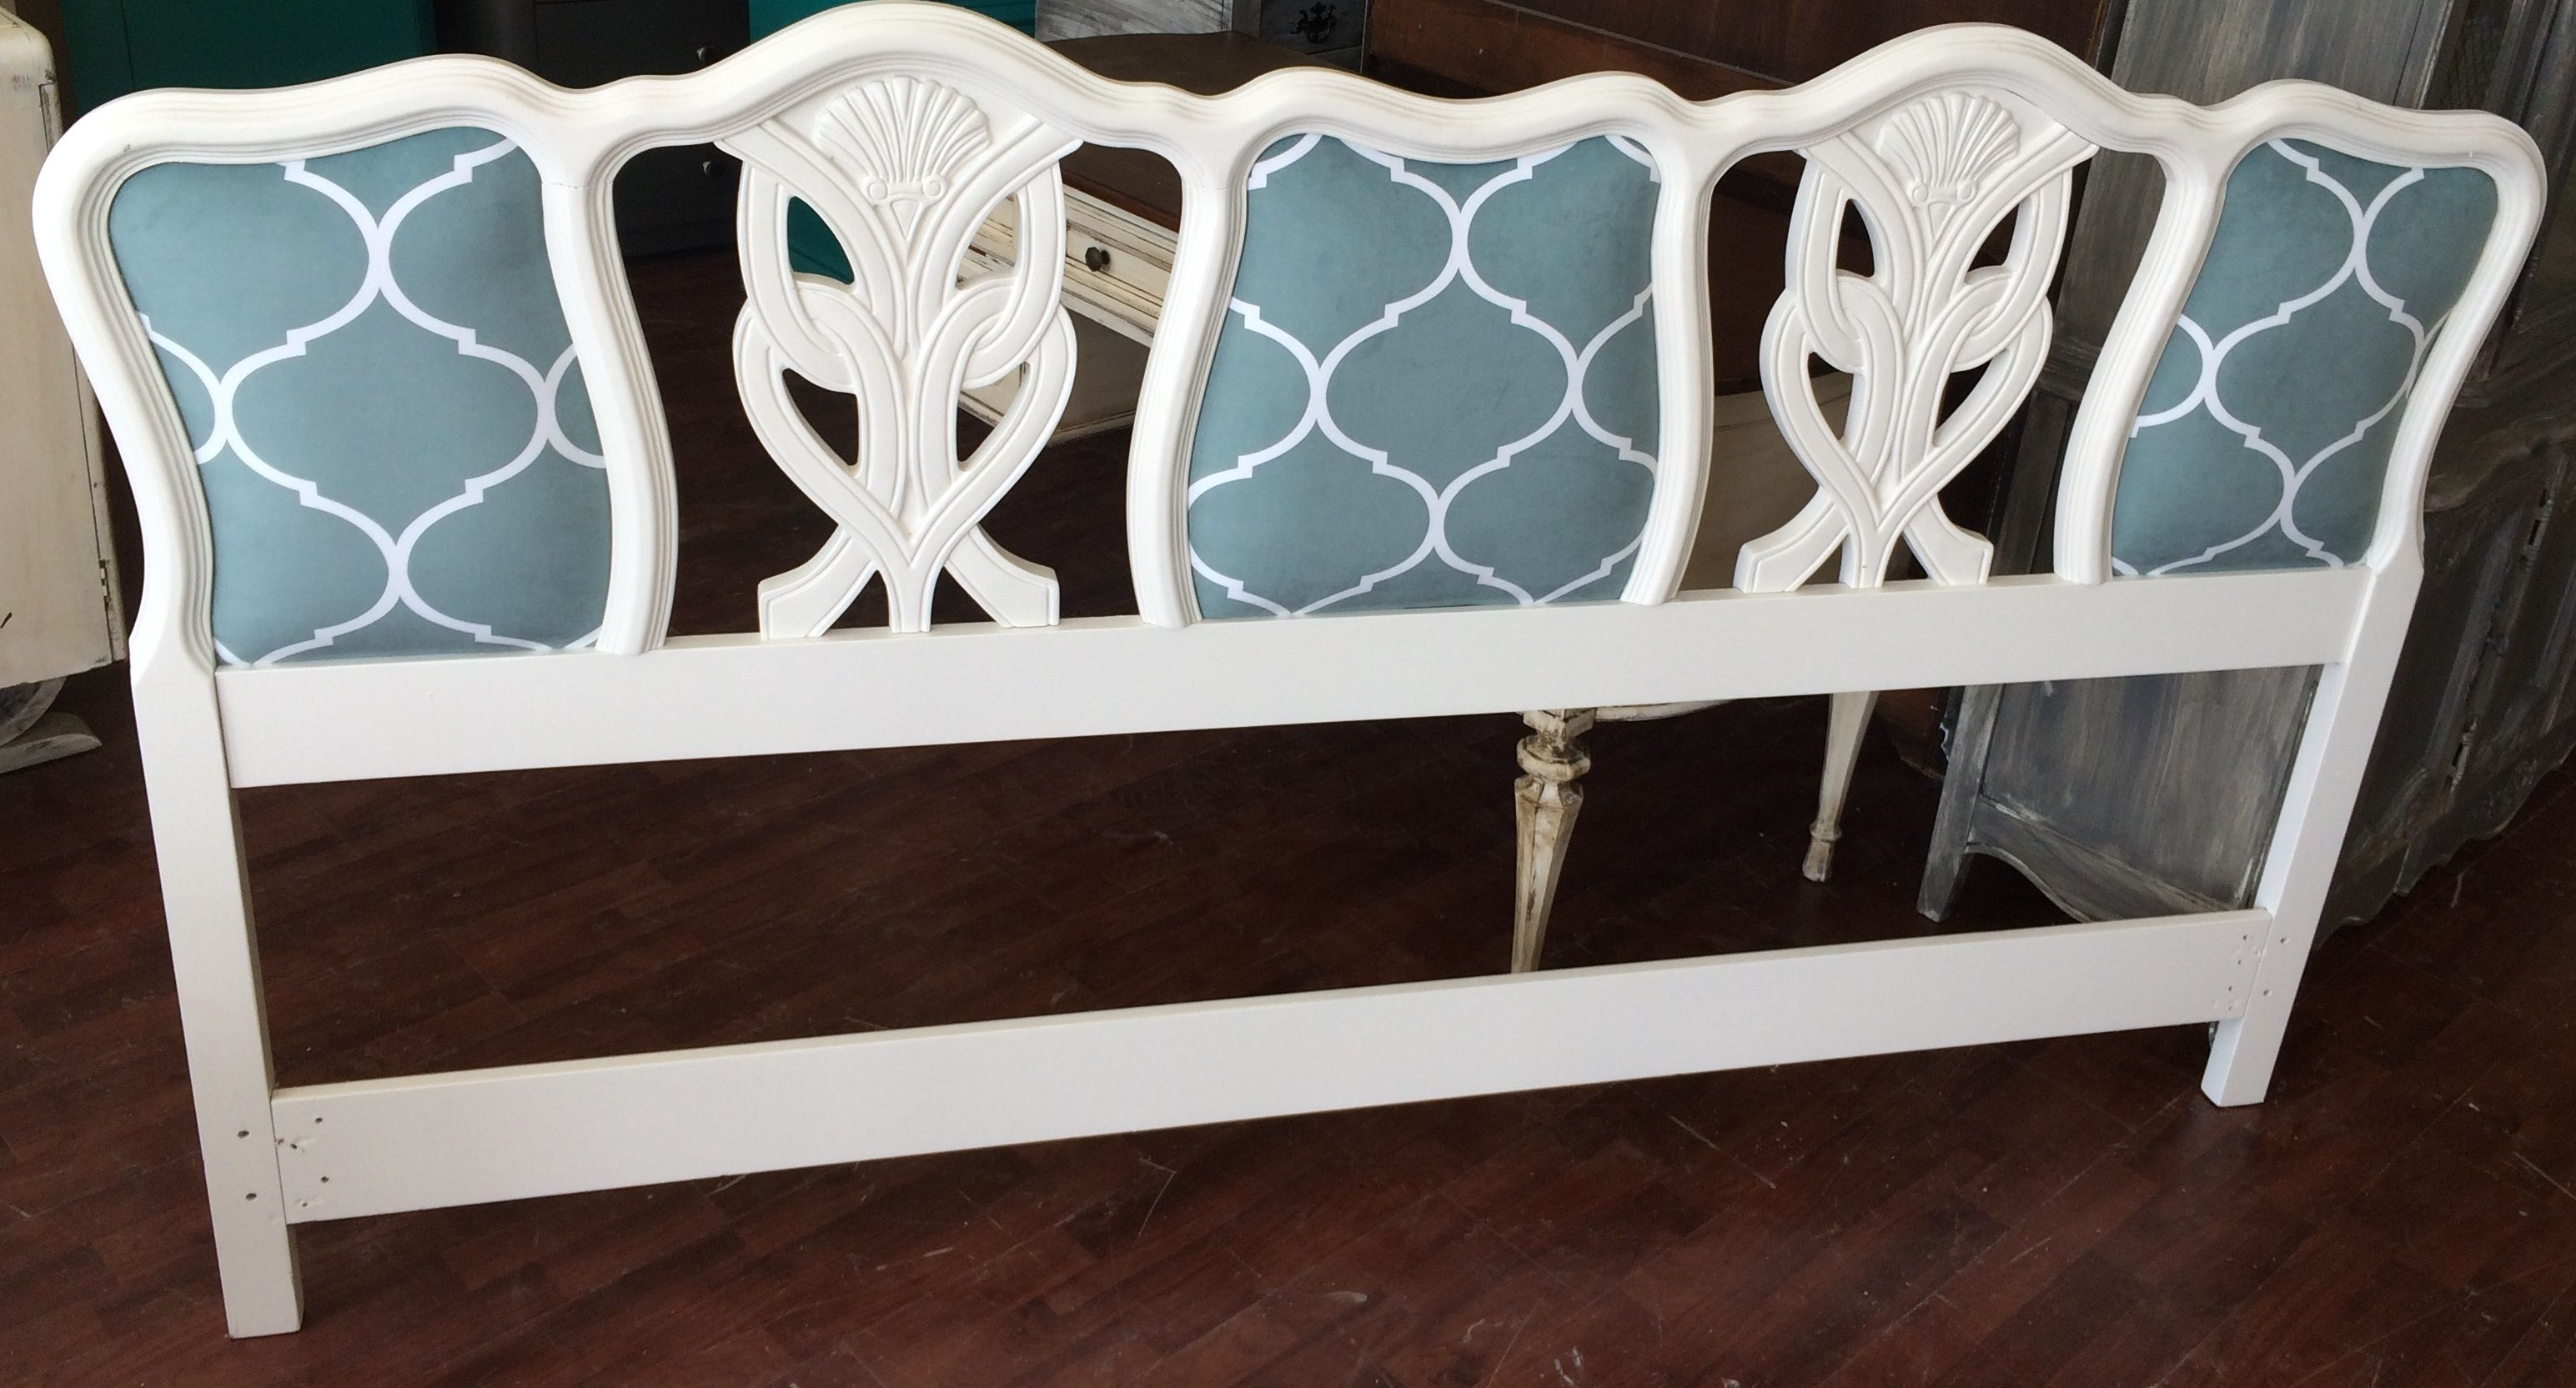 Pin By Shabby Chic Texas On My Shabby Chic Beds In 2019